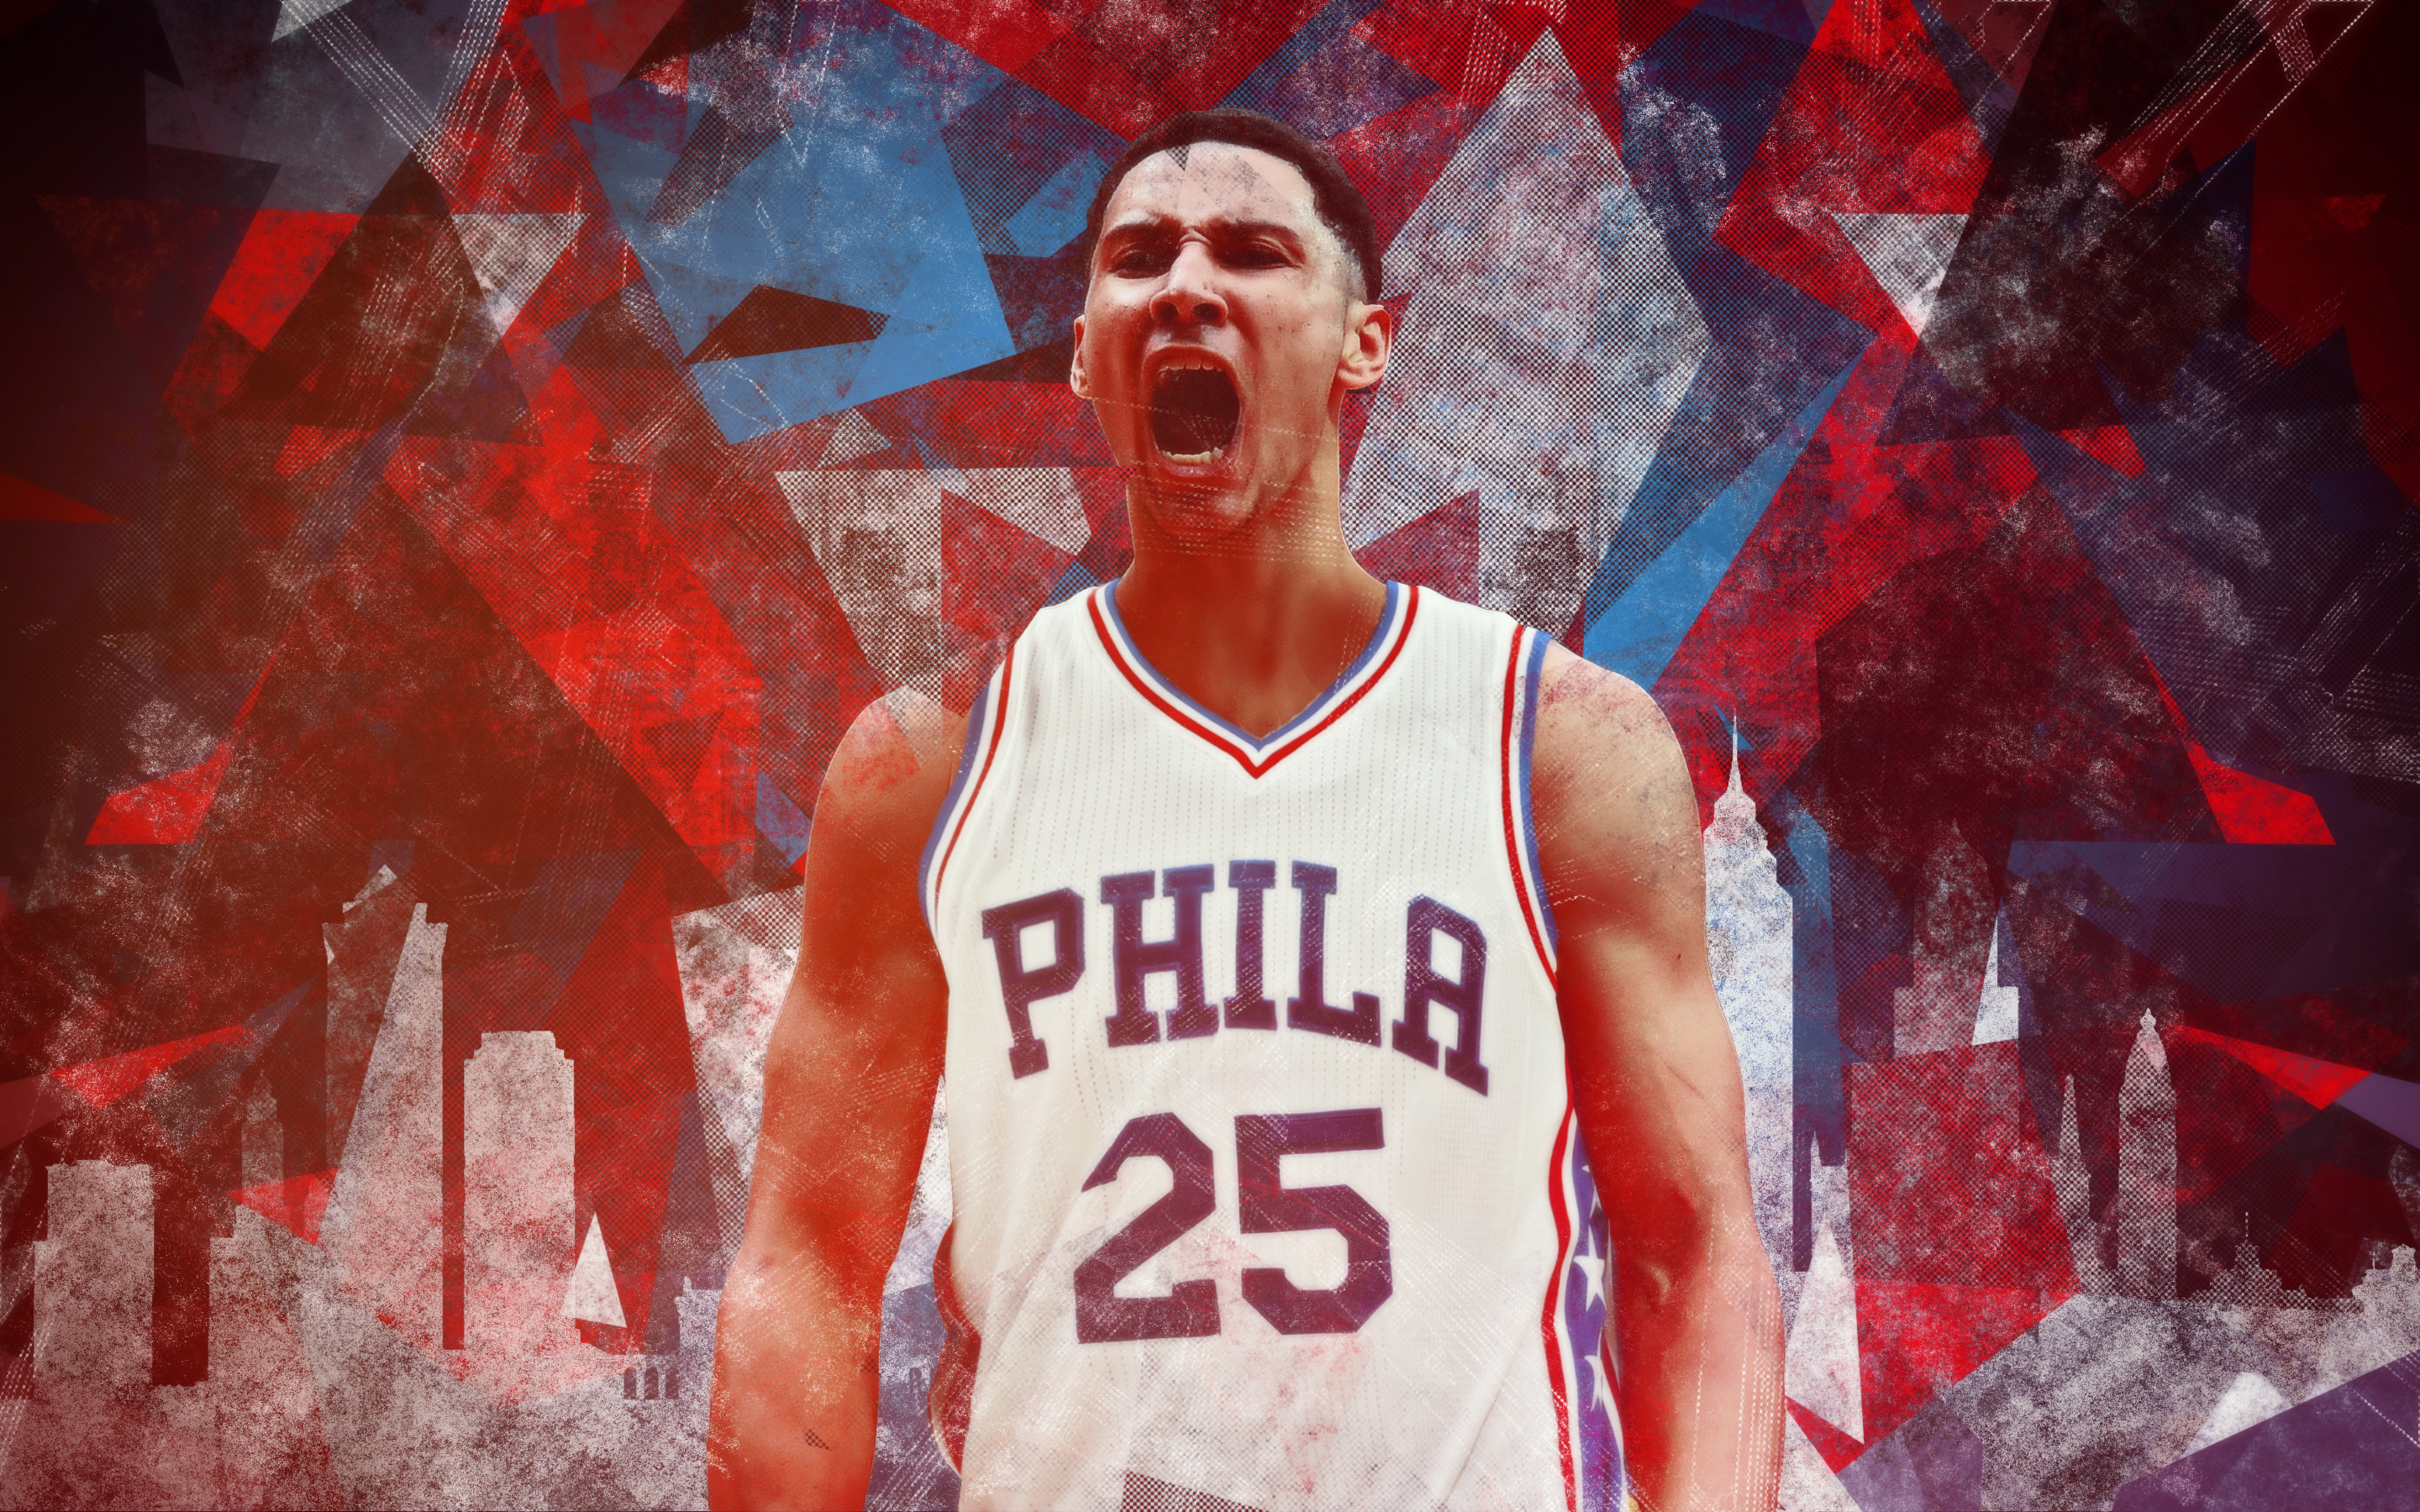 Sixers Wallpaper 82 images 2880x1800